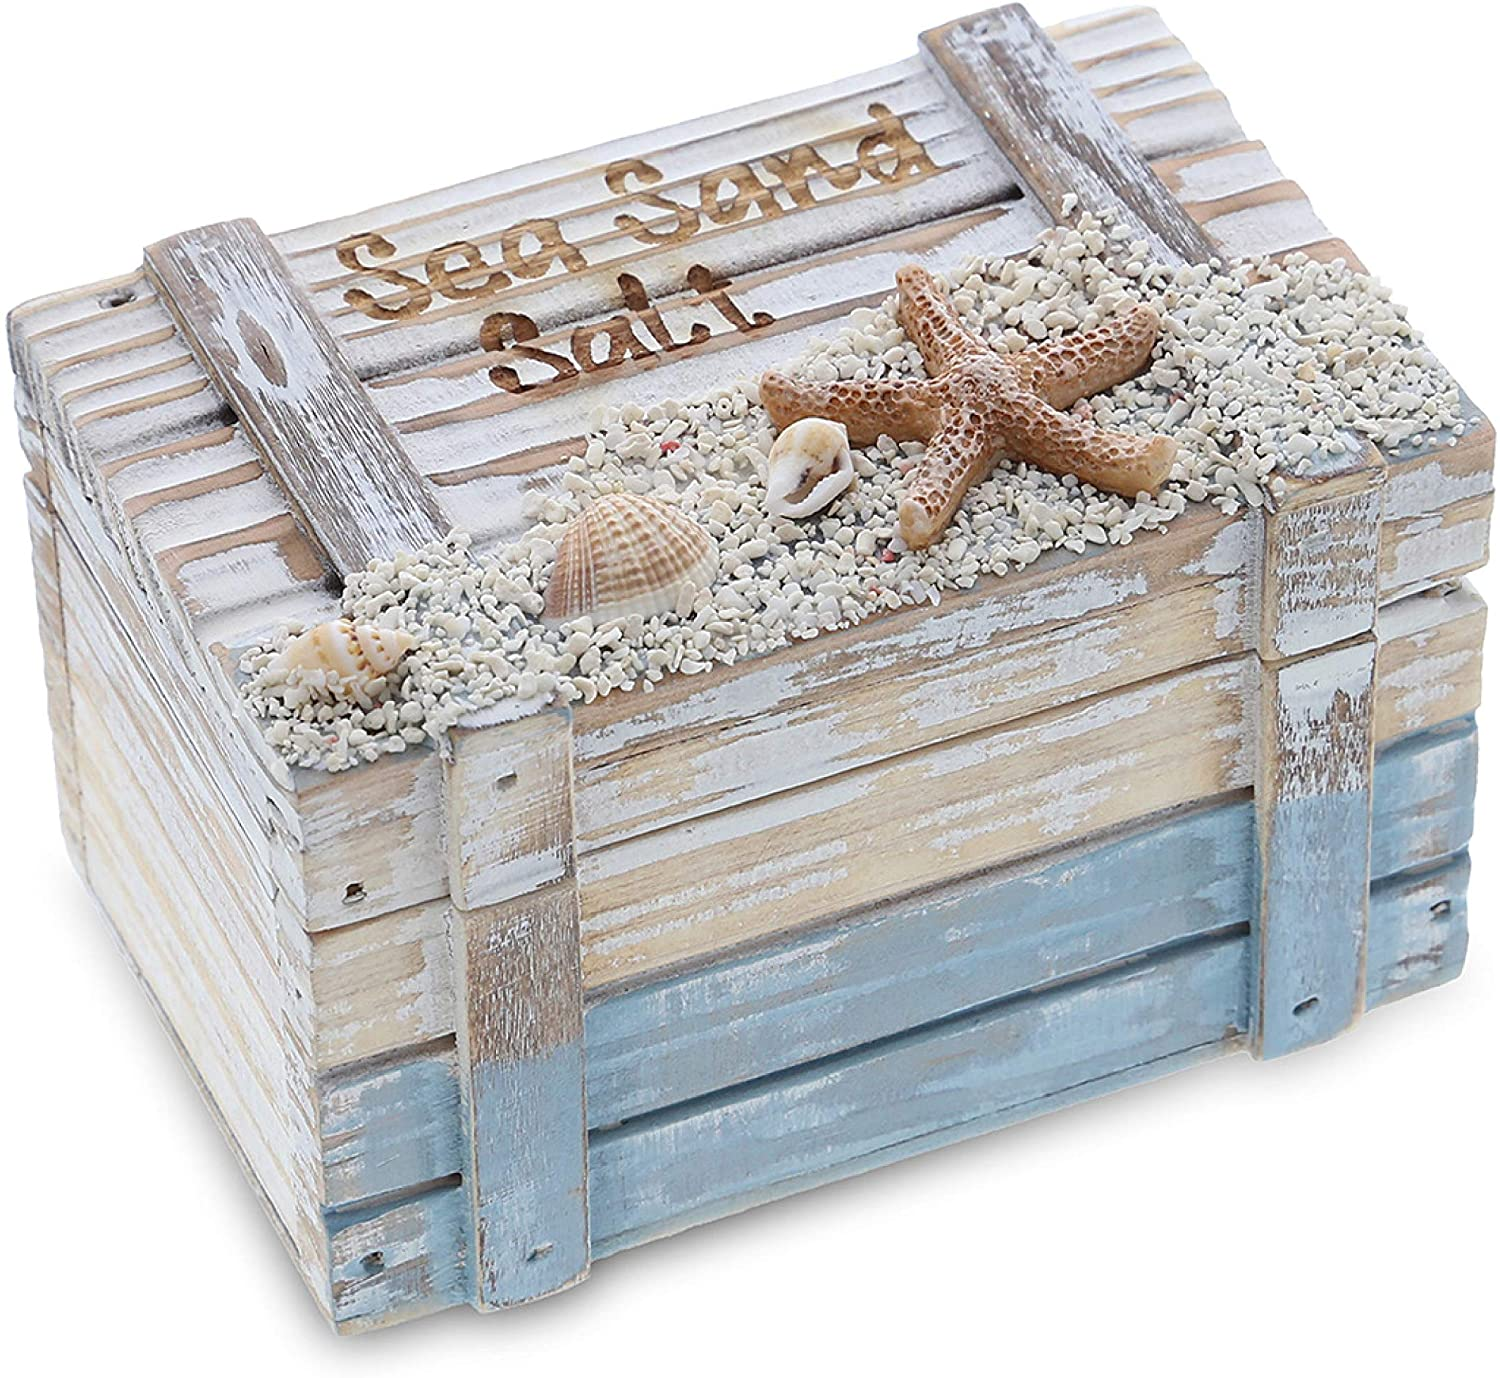 CoTa Global Coastal Horizon Wooden Nautical Jewelry Box 4.25 Inch, Rustic Nautical Decor Trinket Storage with Hinged Lid, Beach Theme Decor & Ocean Party Decorations, Beach Decor for Bedroom & Home